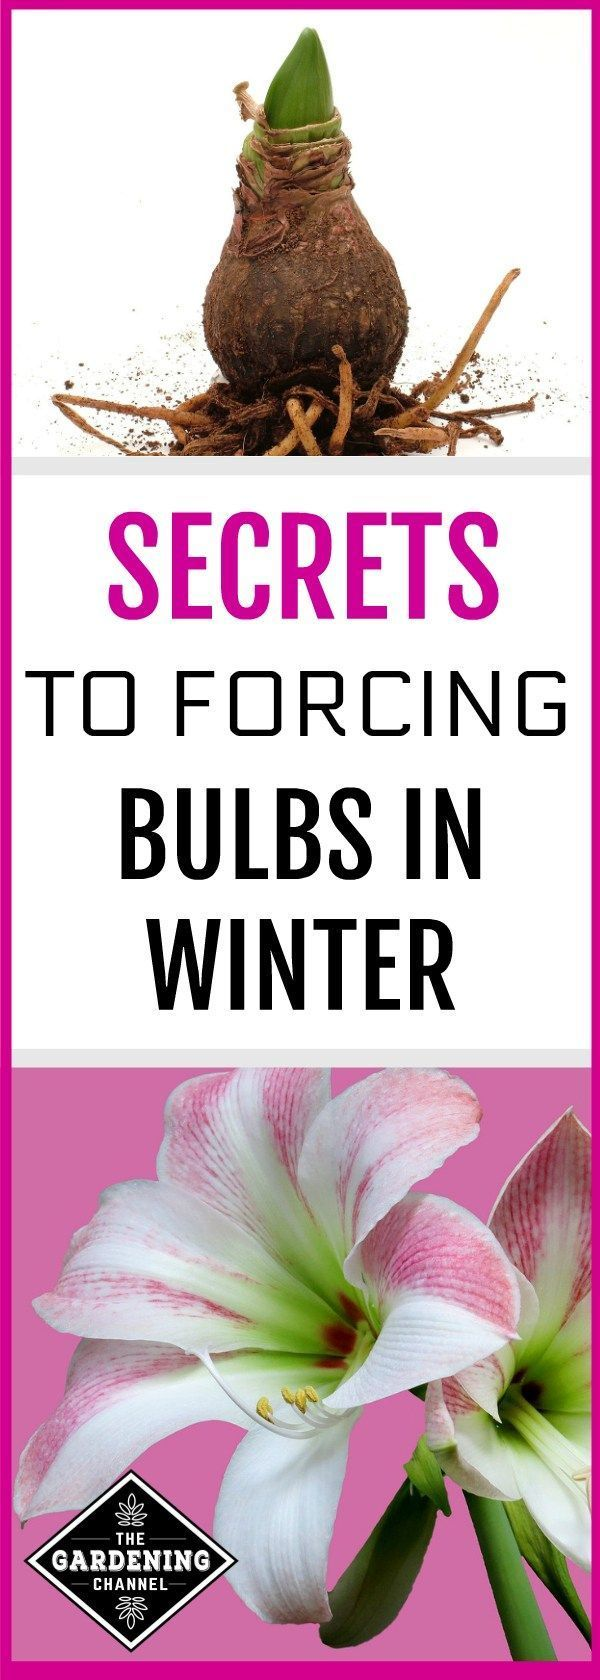 Force Bulbs in Winter Learn how to force bulbs in the dark of winter, creating a beautiful indoor flower garden. Forcing bulbs can be a little tricky, so don't miss this guide.Learn how to force bulbs in the dark of winter, creating a beautiful indoor flower garden. Forcing bulbs can be a little tricky, so don't miss this guide.